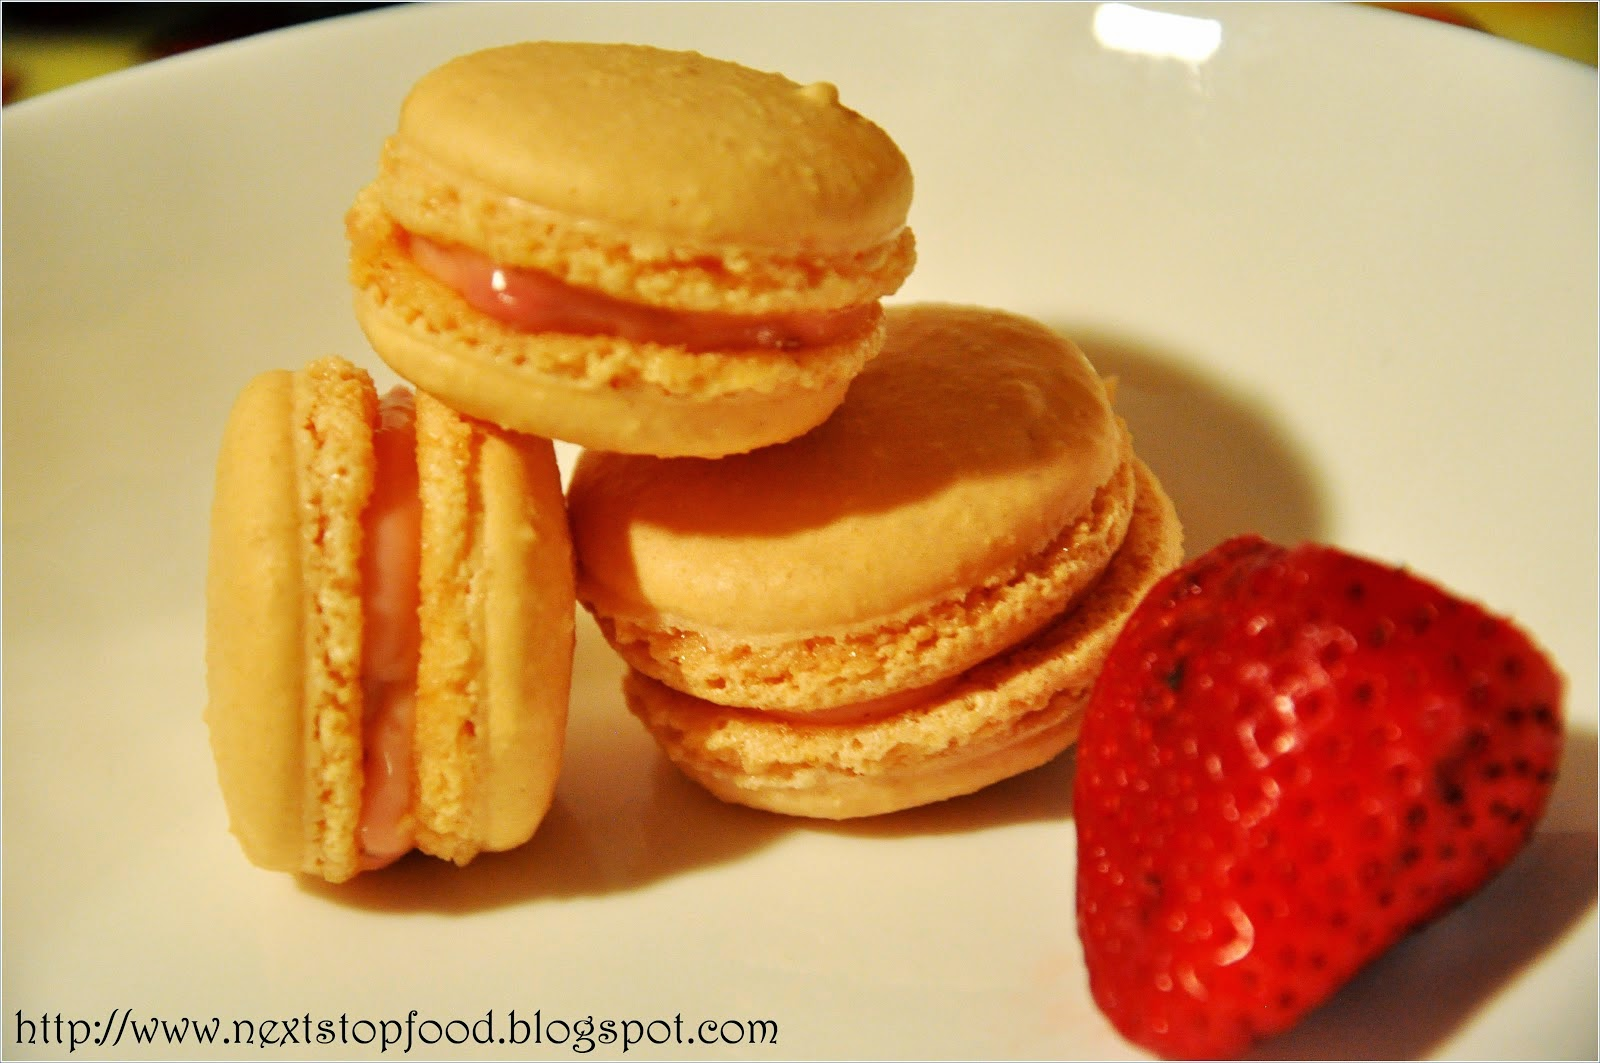 http://nextstopfood.blogspot.com.au/2012/11/recipe-strawberry-cheesecake-macarons.html